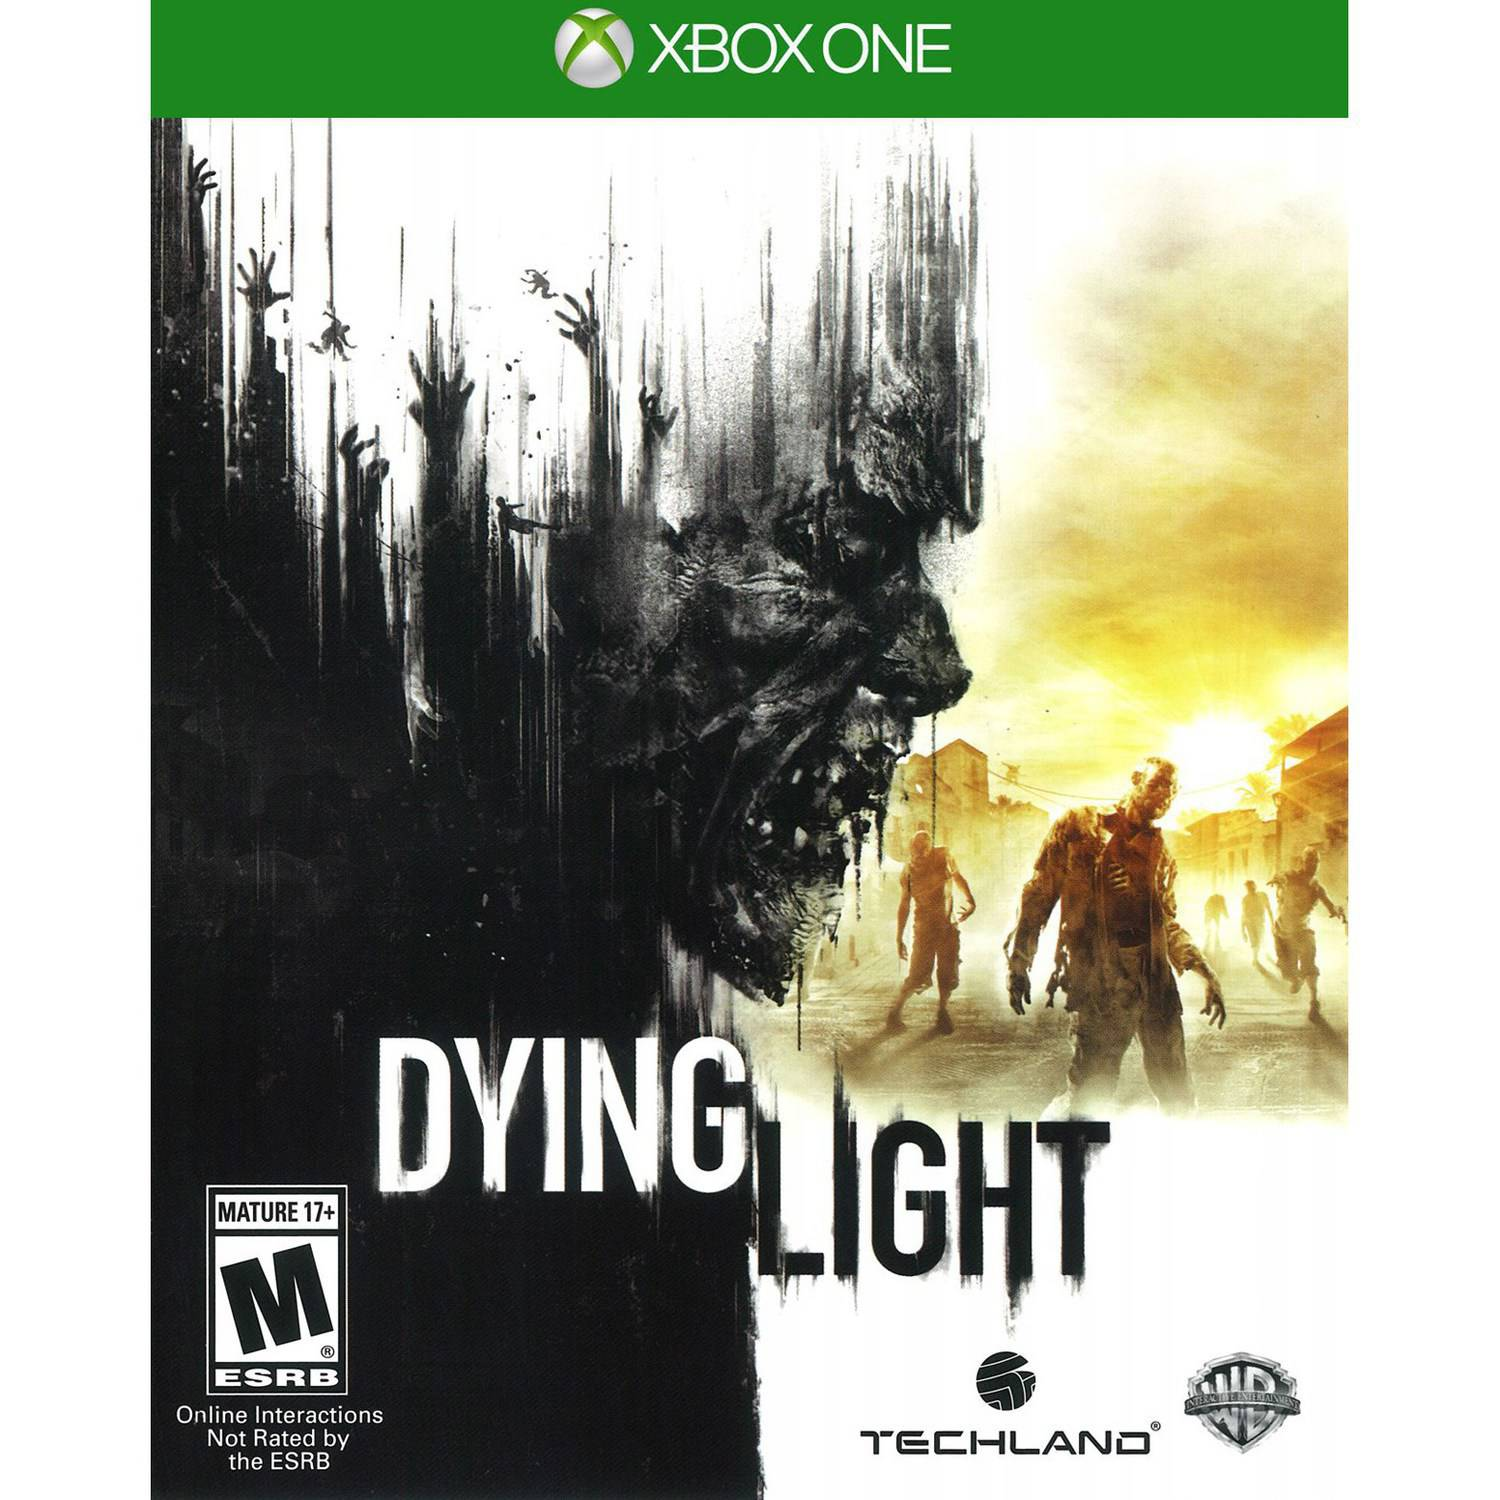 Dying Light (Xbox One) - Pre-Owned